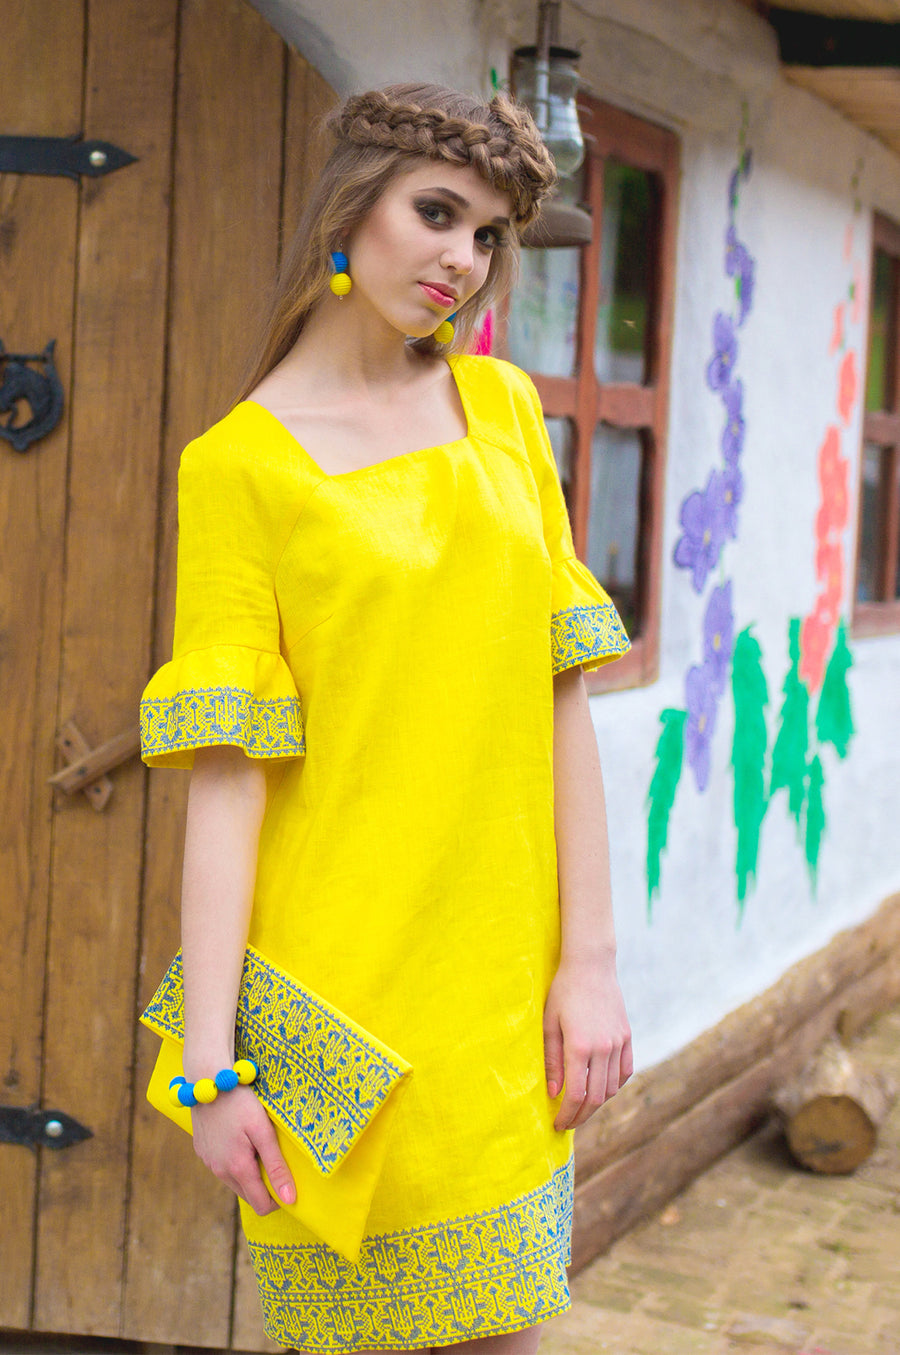 The dress is yellow with embroidery in the national style